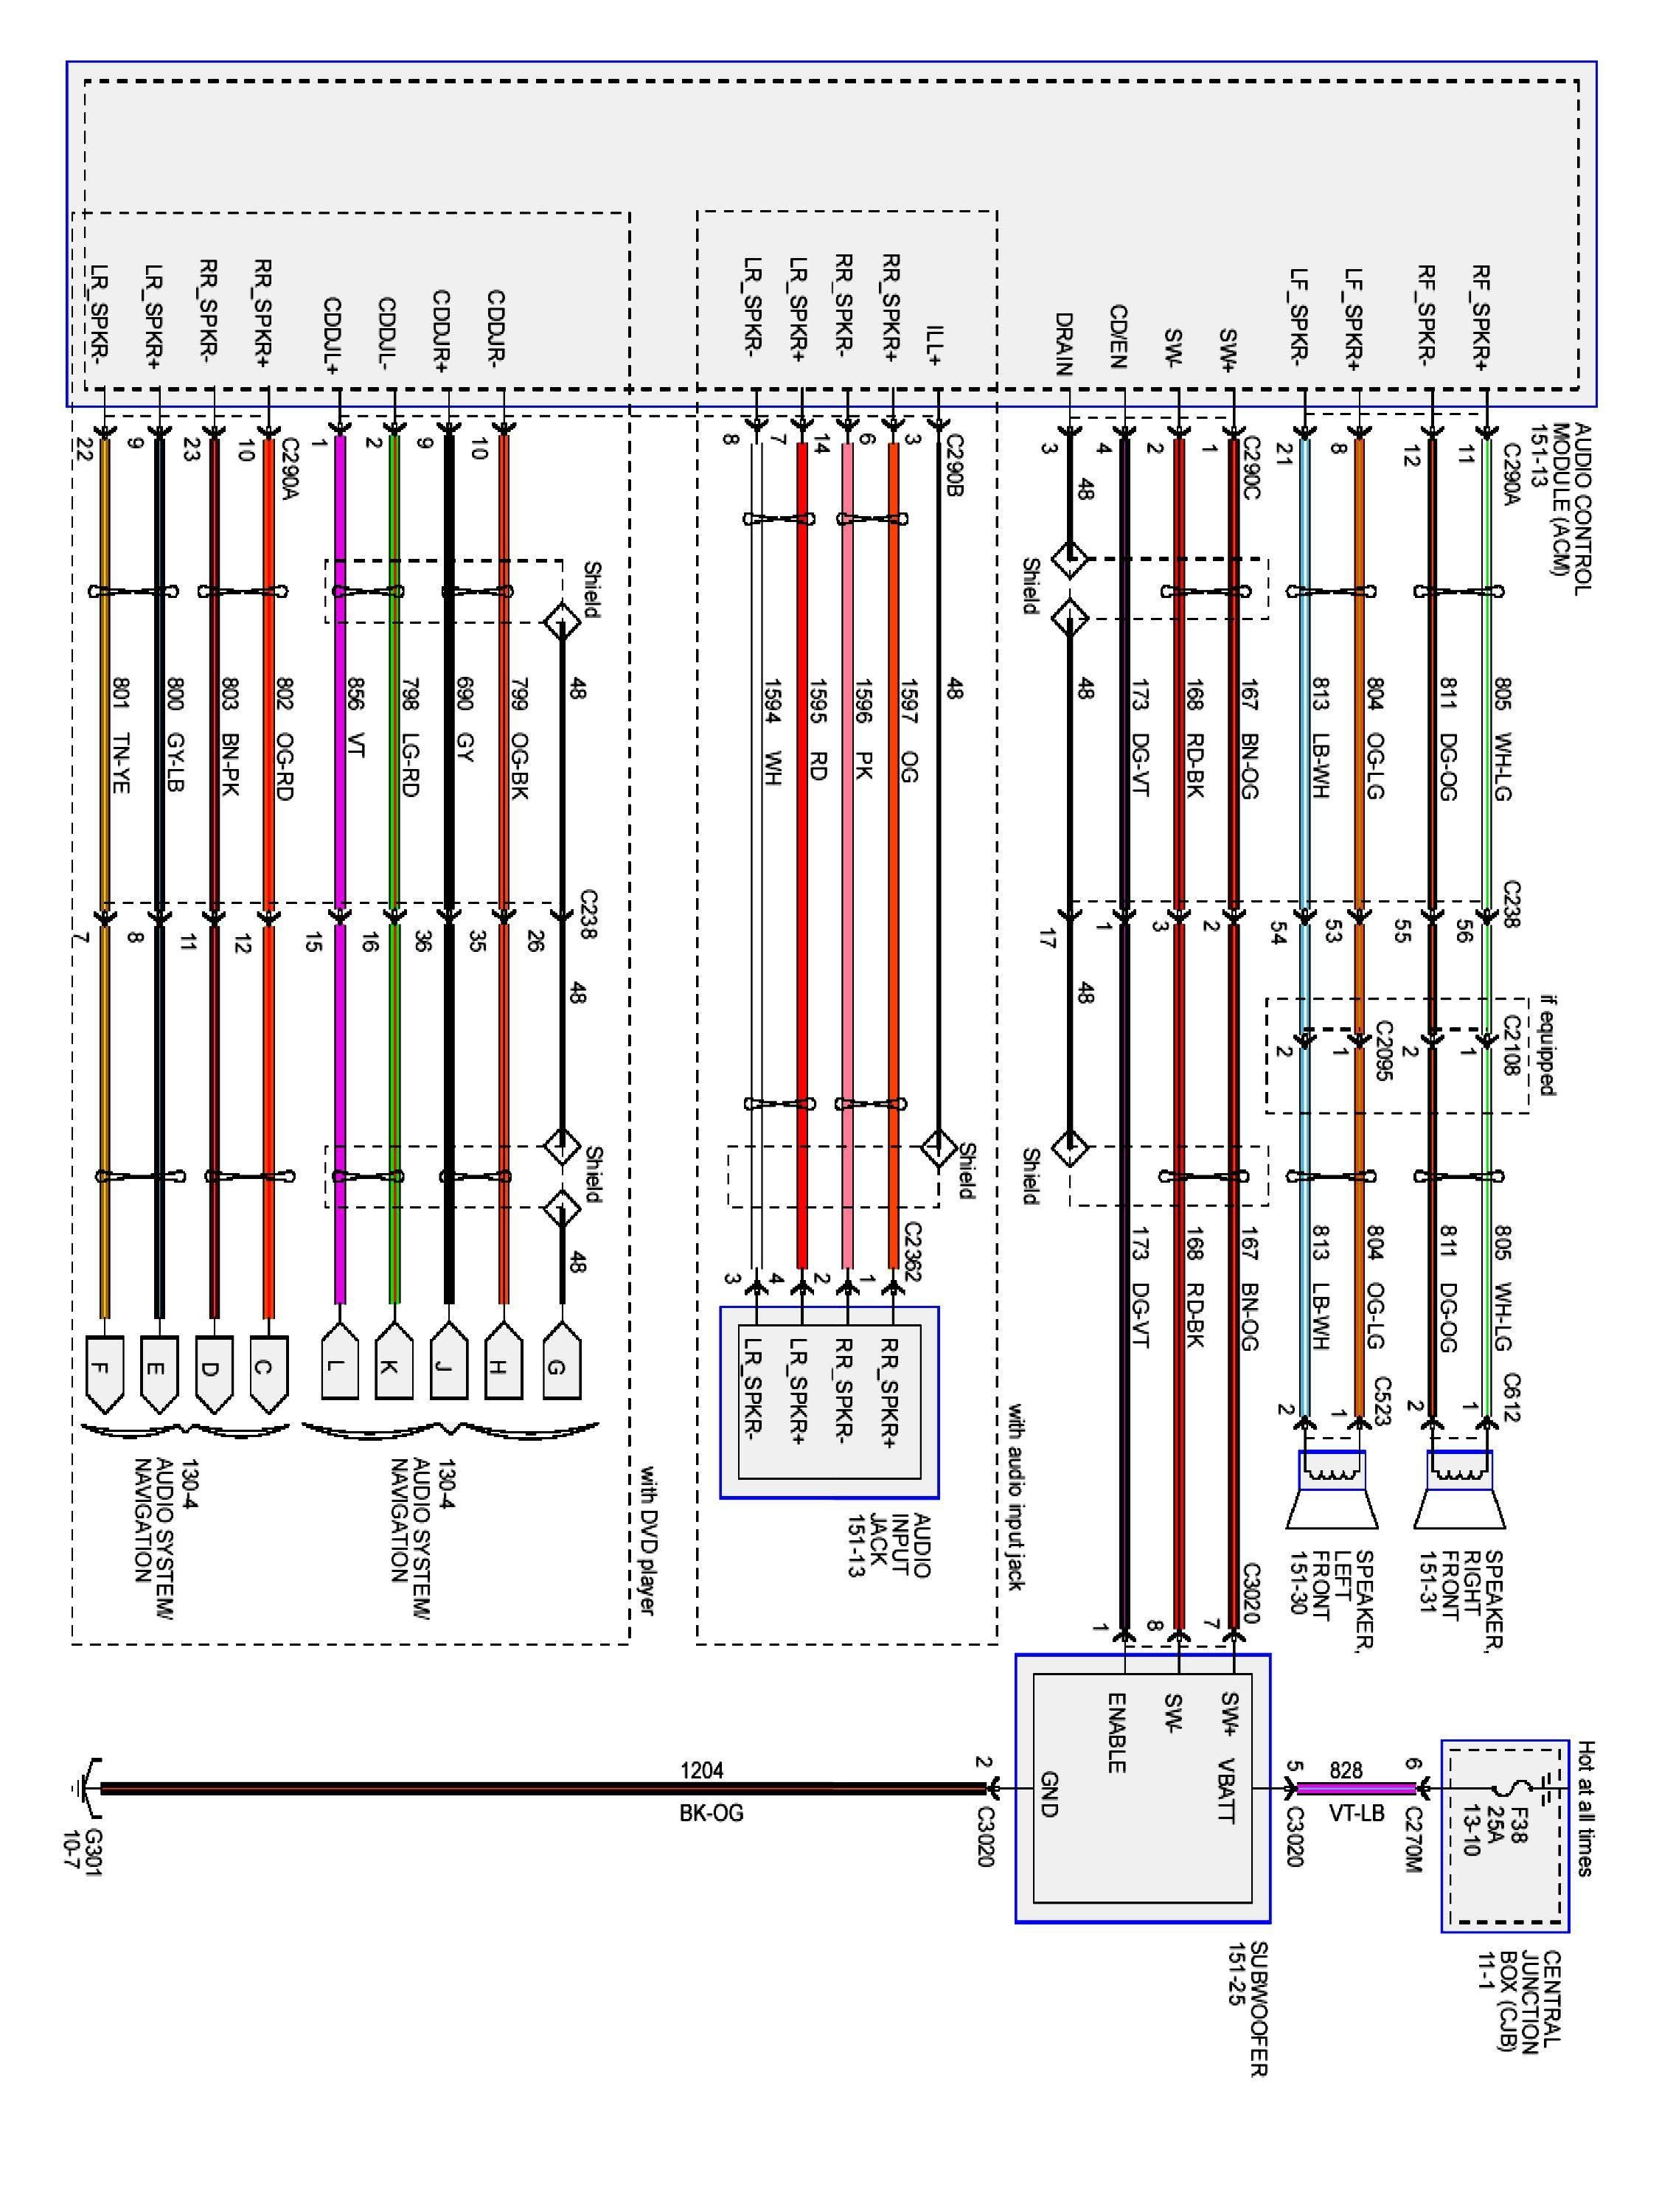 Unique Automotive Wiring Diagram Color Codes Diagram Wiringdiagram Diagramming Diagramm Visuals Vis Trailer Wiring Diagram 2004 Ford F150 Ford Expedition